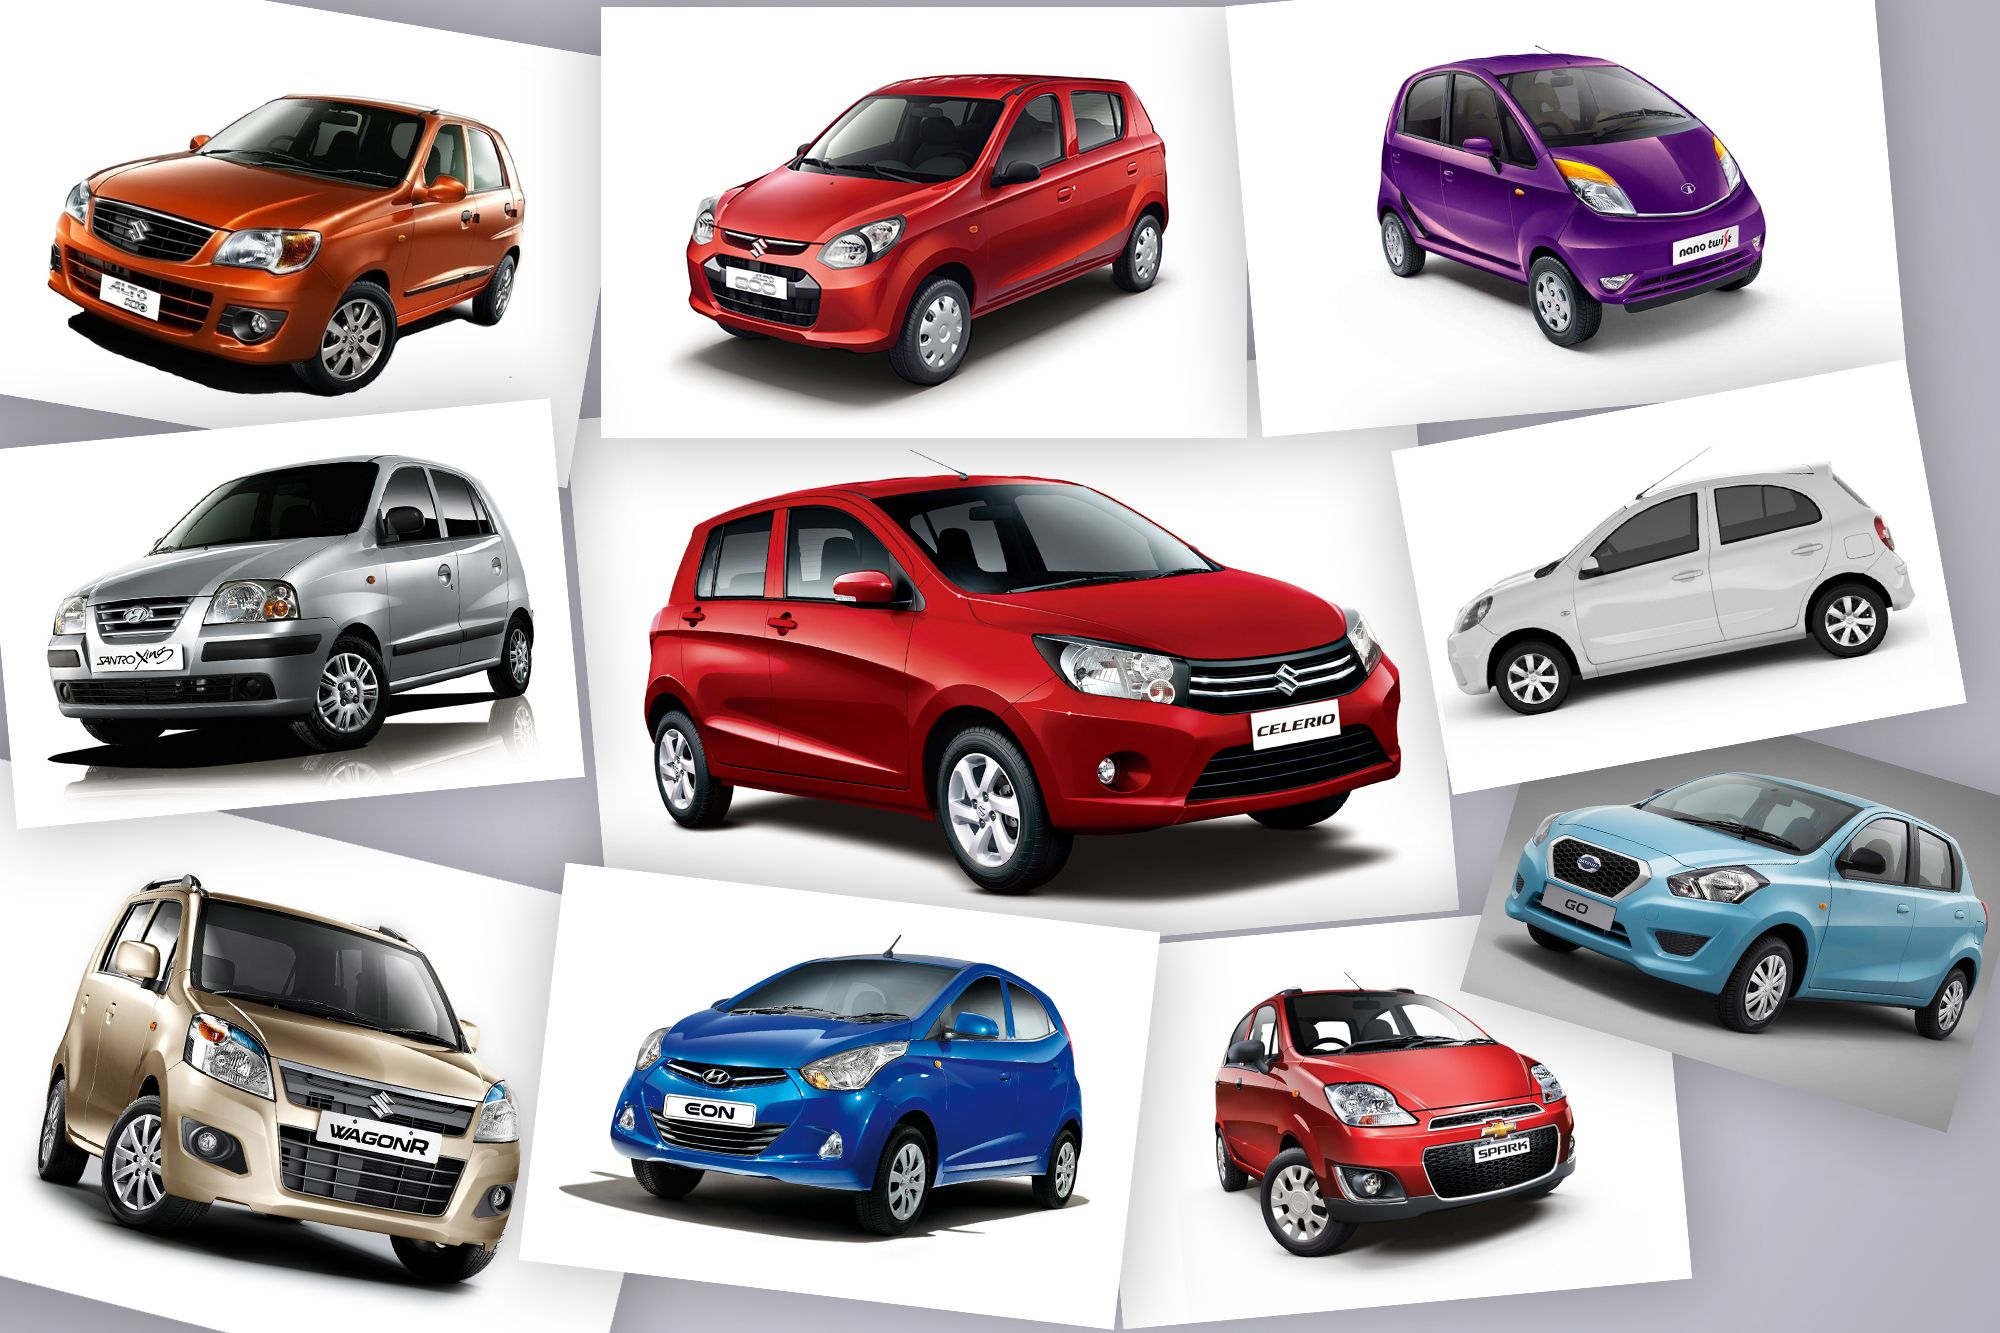 Find all new cars listings in bangalore deal with quikrcars to find great offers on